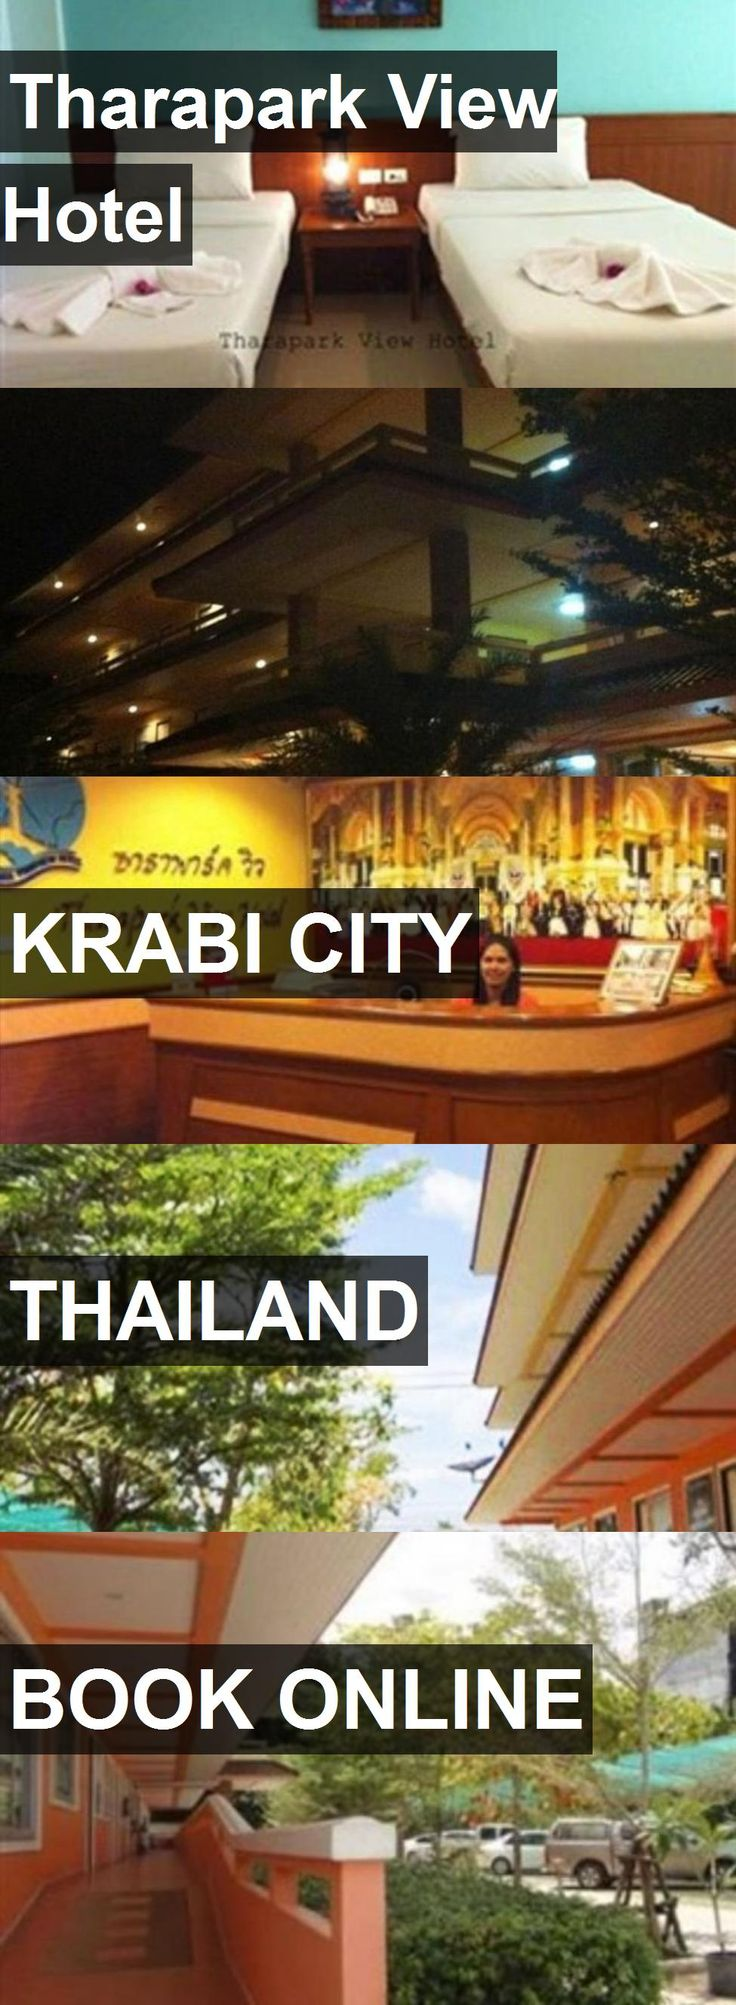 Tharapark View Hotel in Krabi City, Thailand. For more information, photos, reviews and best prices please follow the link. #Thailand #KrabiCity #travel #vacation #hotel